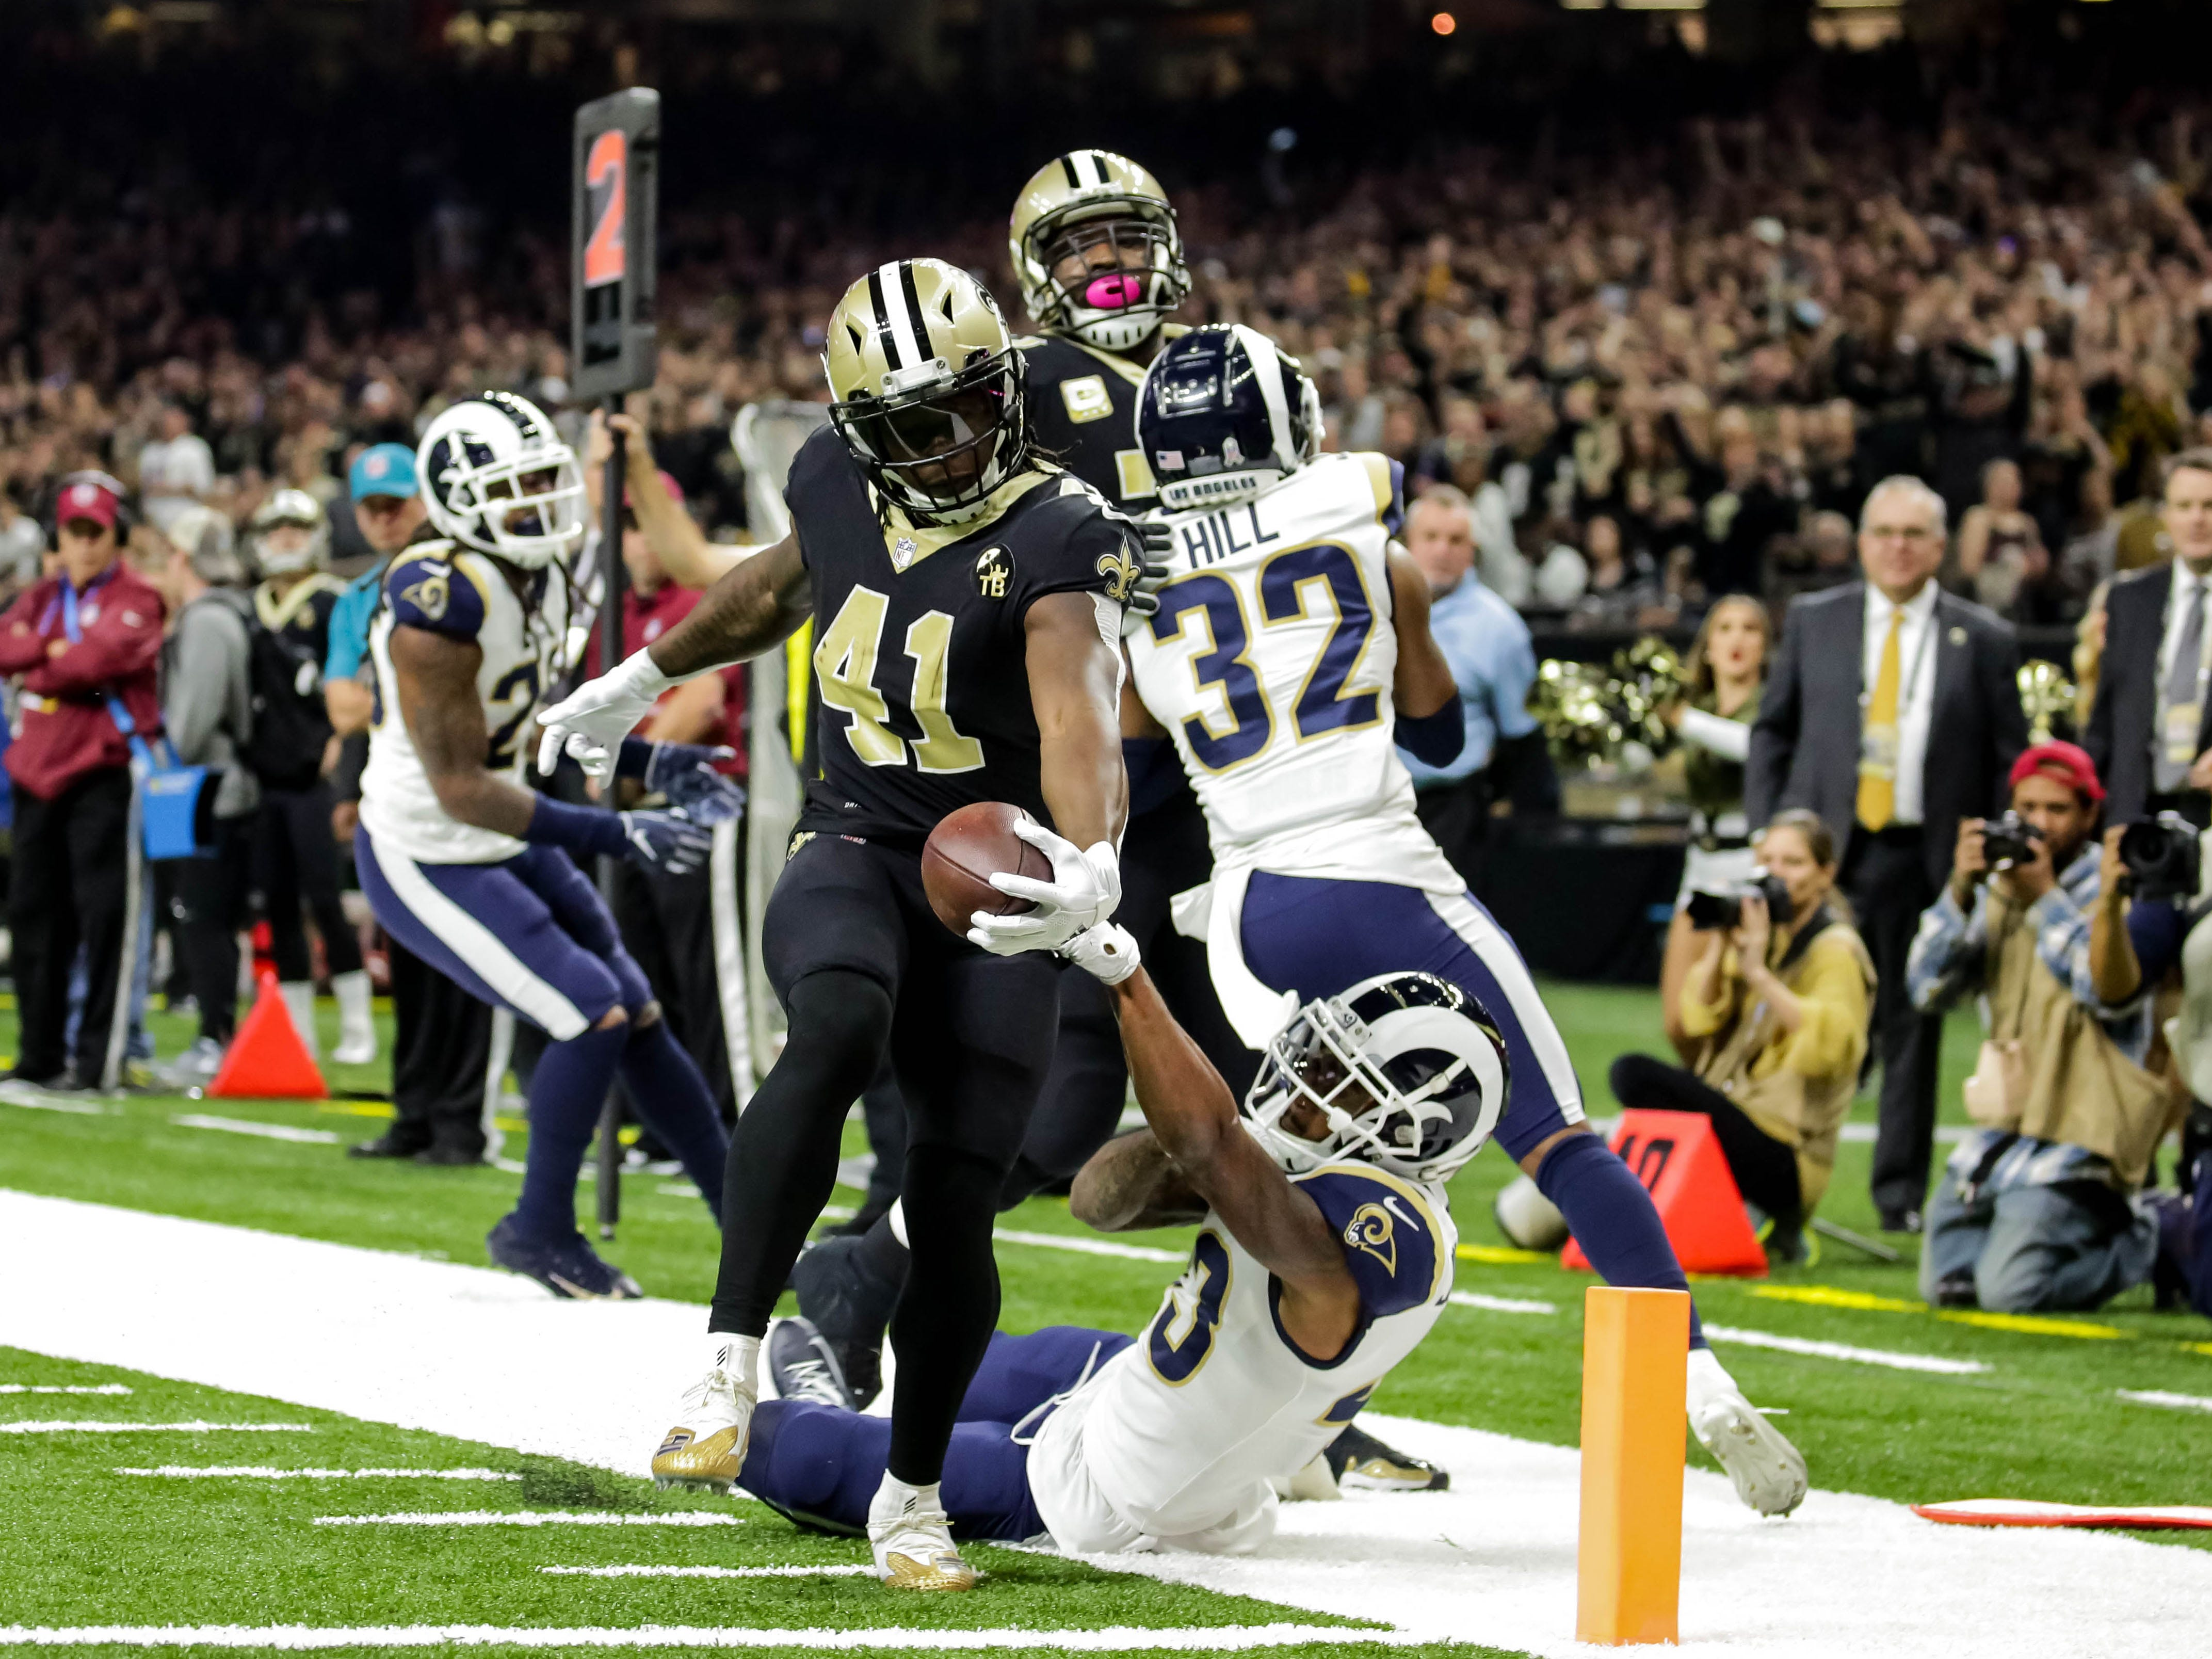 New Orleans Saints running back Alvin Kamara (41) breaks a tackle by Los Angeles Rams strong safety John Johnson (43) to score a touchdown in the first quarter at the Mercedes-Benz Superdome.